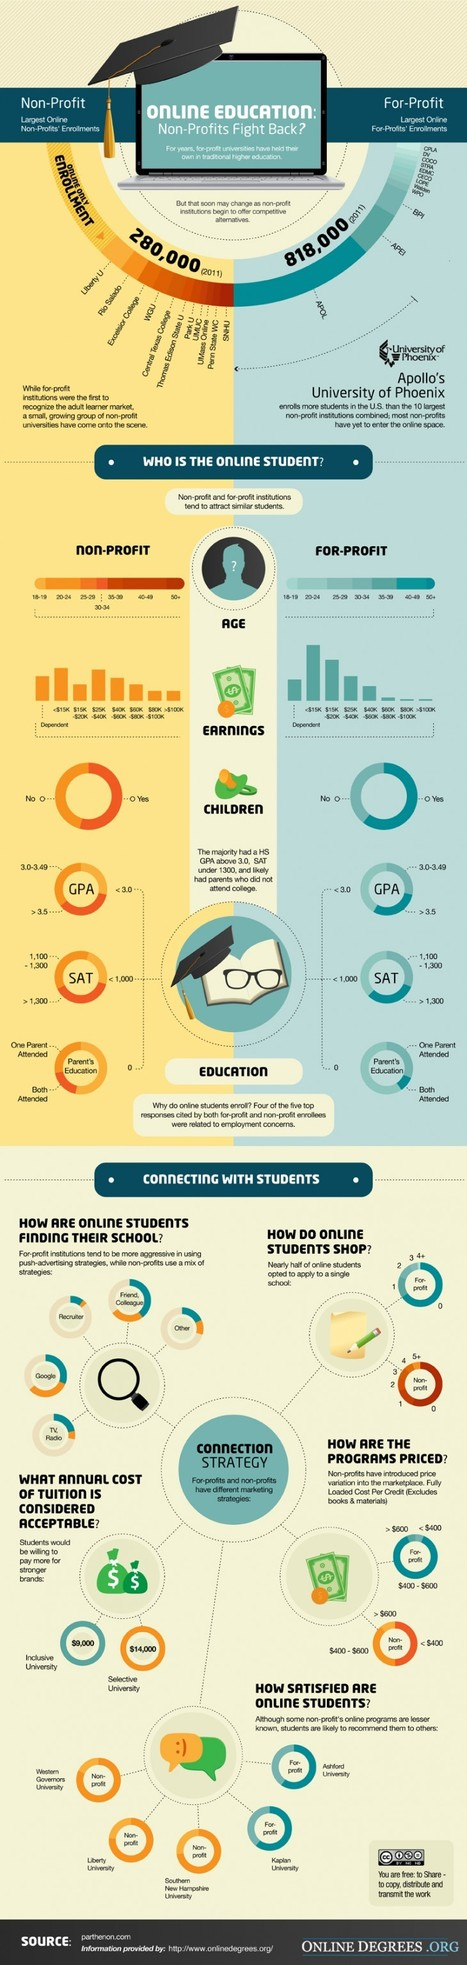 How Non-Profits Are Approaching Online Education - Edudemic   :: The 4th Era ::   Scoop.it